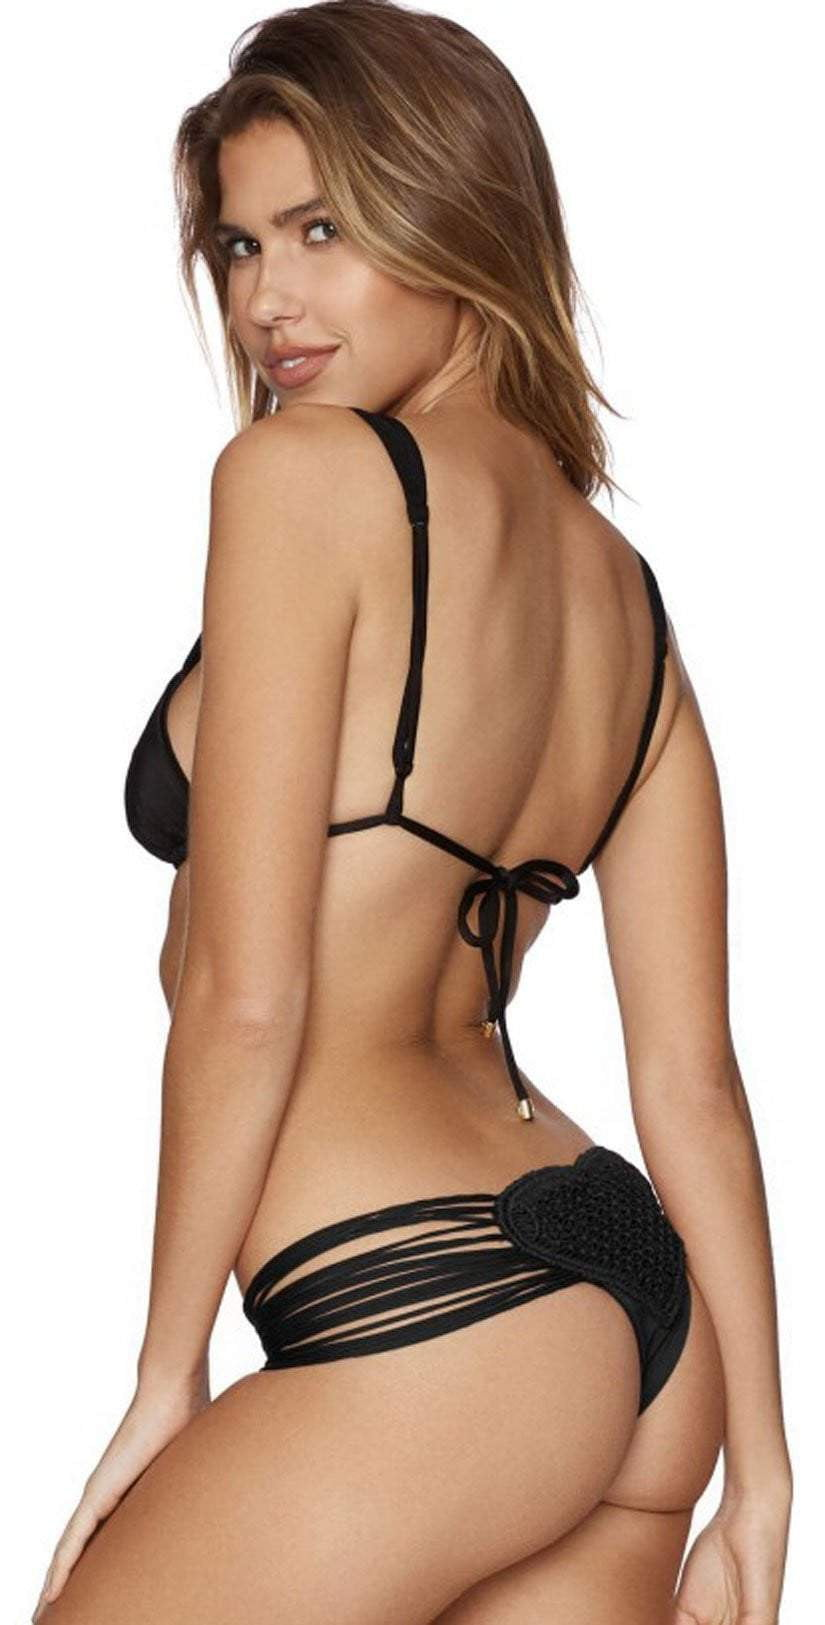 Beach Bunny Queen of Hearts Tango Bottom in Black B17126B4-BLK: